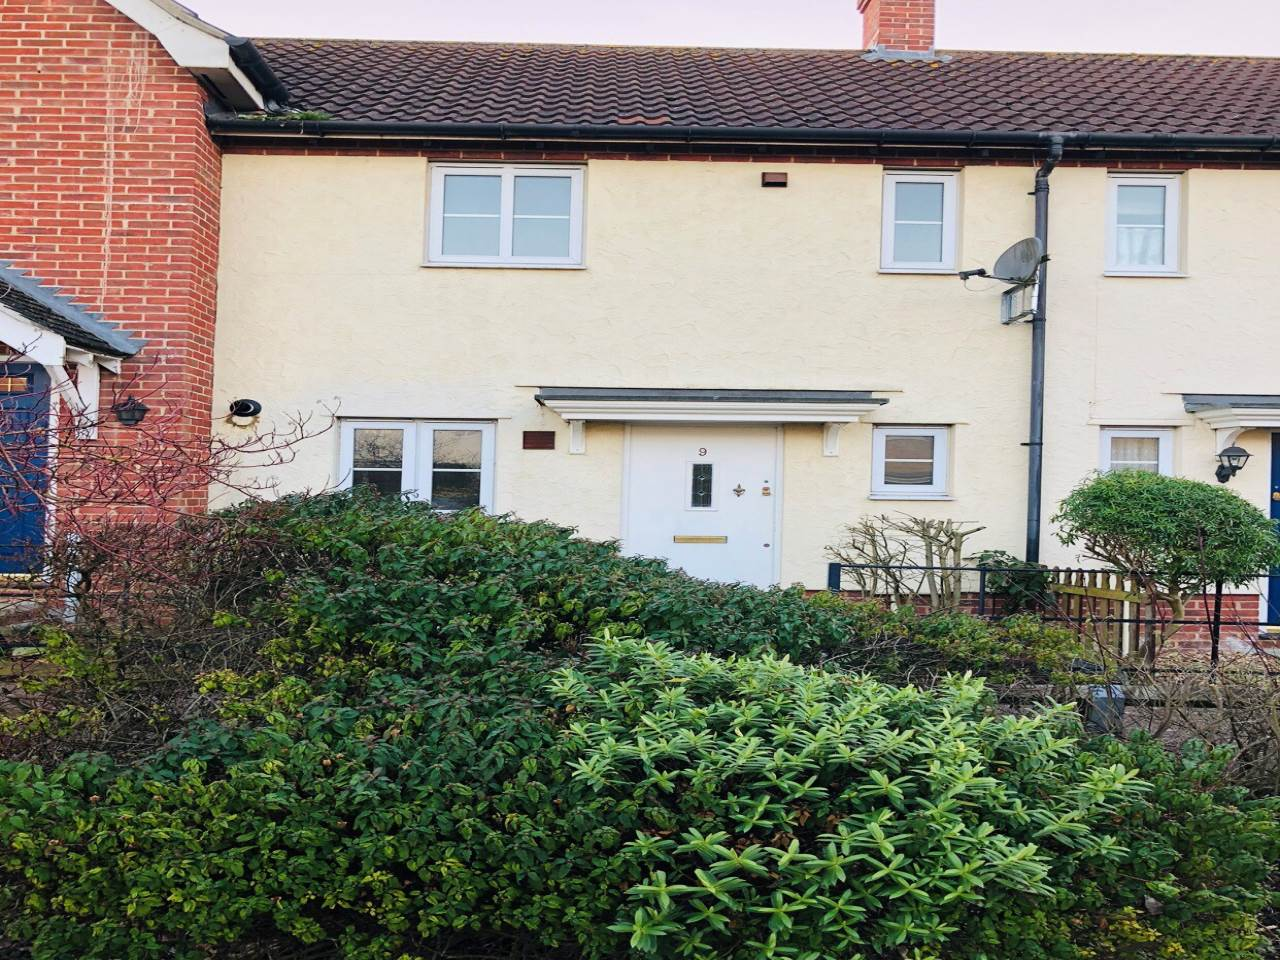 2 bed terraced-house to rent in Haverhill, CB9